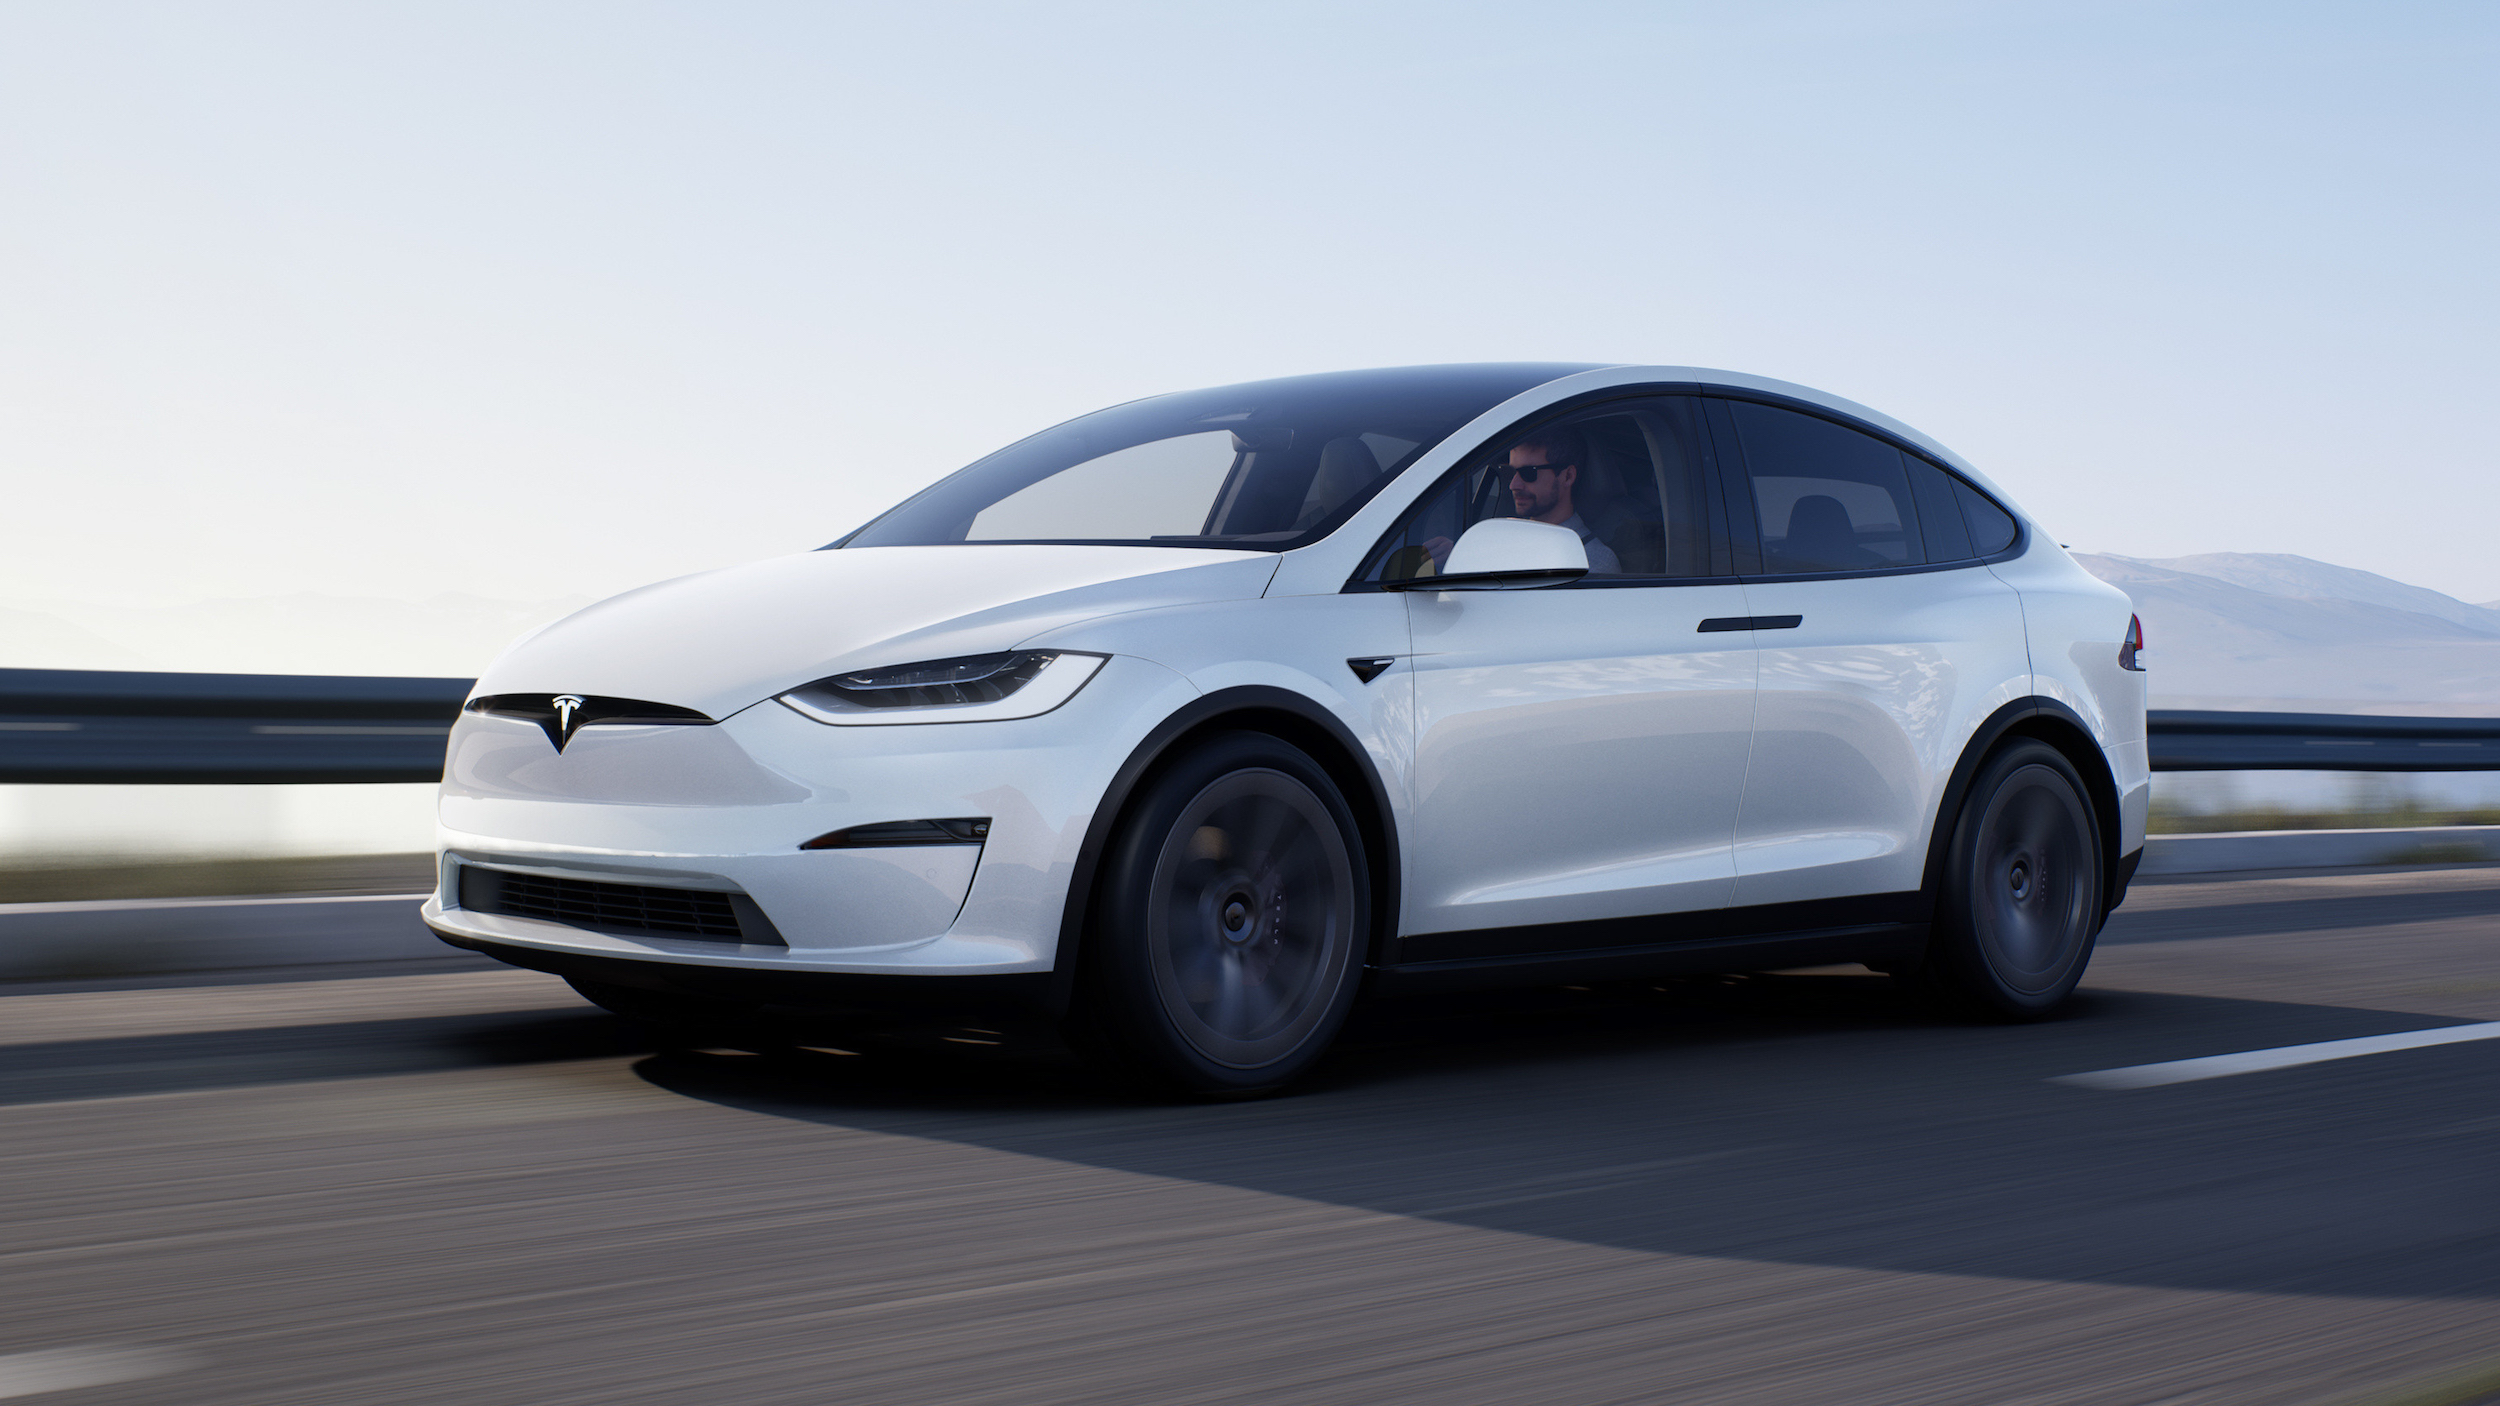 A white Tesla Model X driving on a road